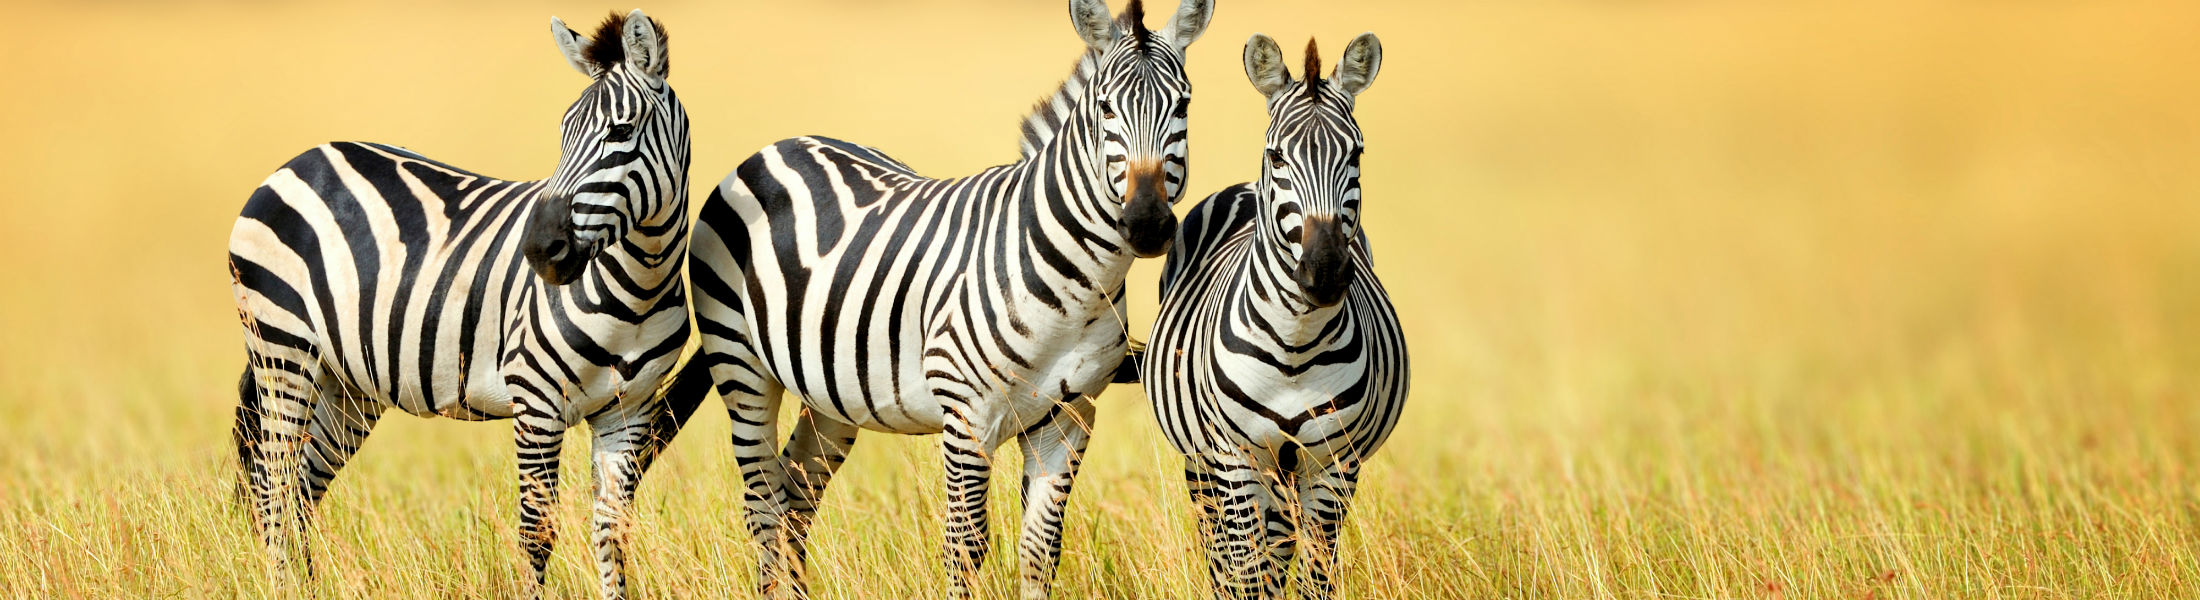 Zebras relaxing on the plains